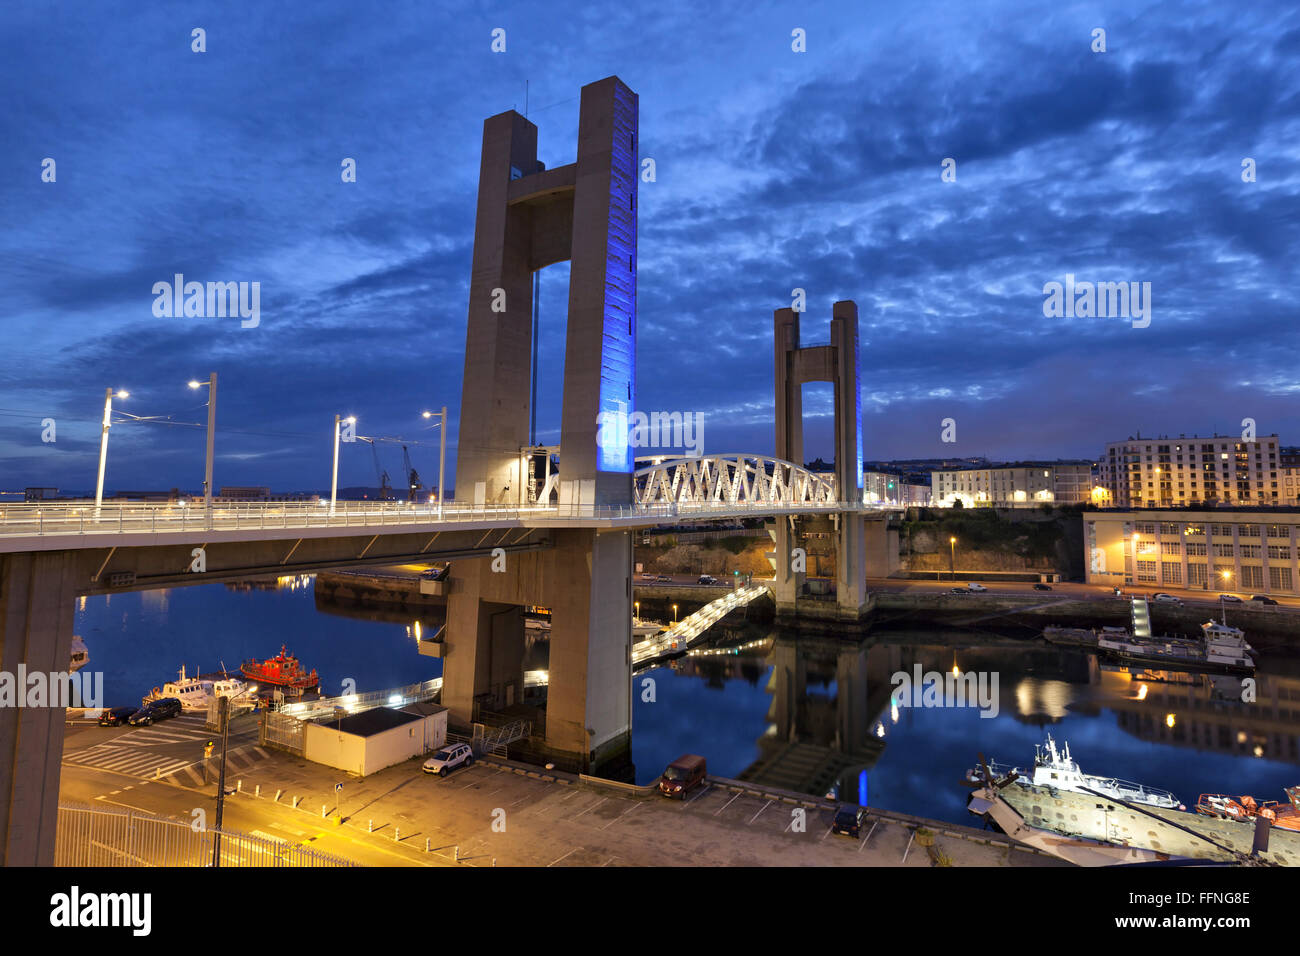 Recouvrance Bridge (Pont de Recouvrance) - a massive drawbridge 64 m high in Brest, Brittany, France - Stock Image